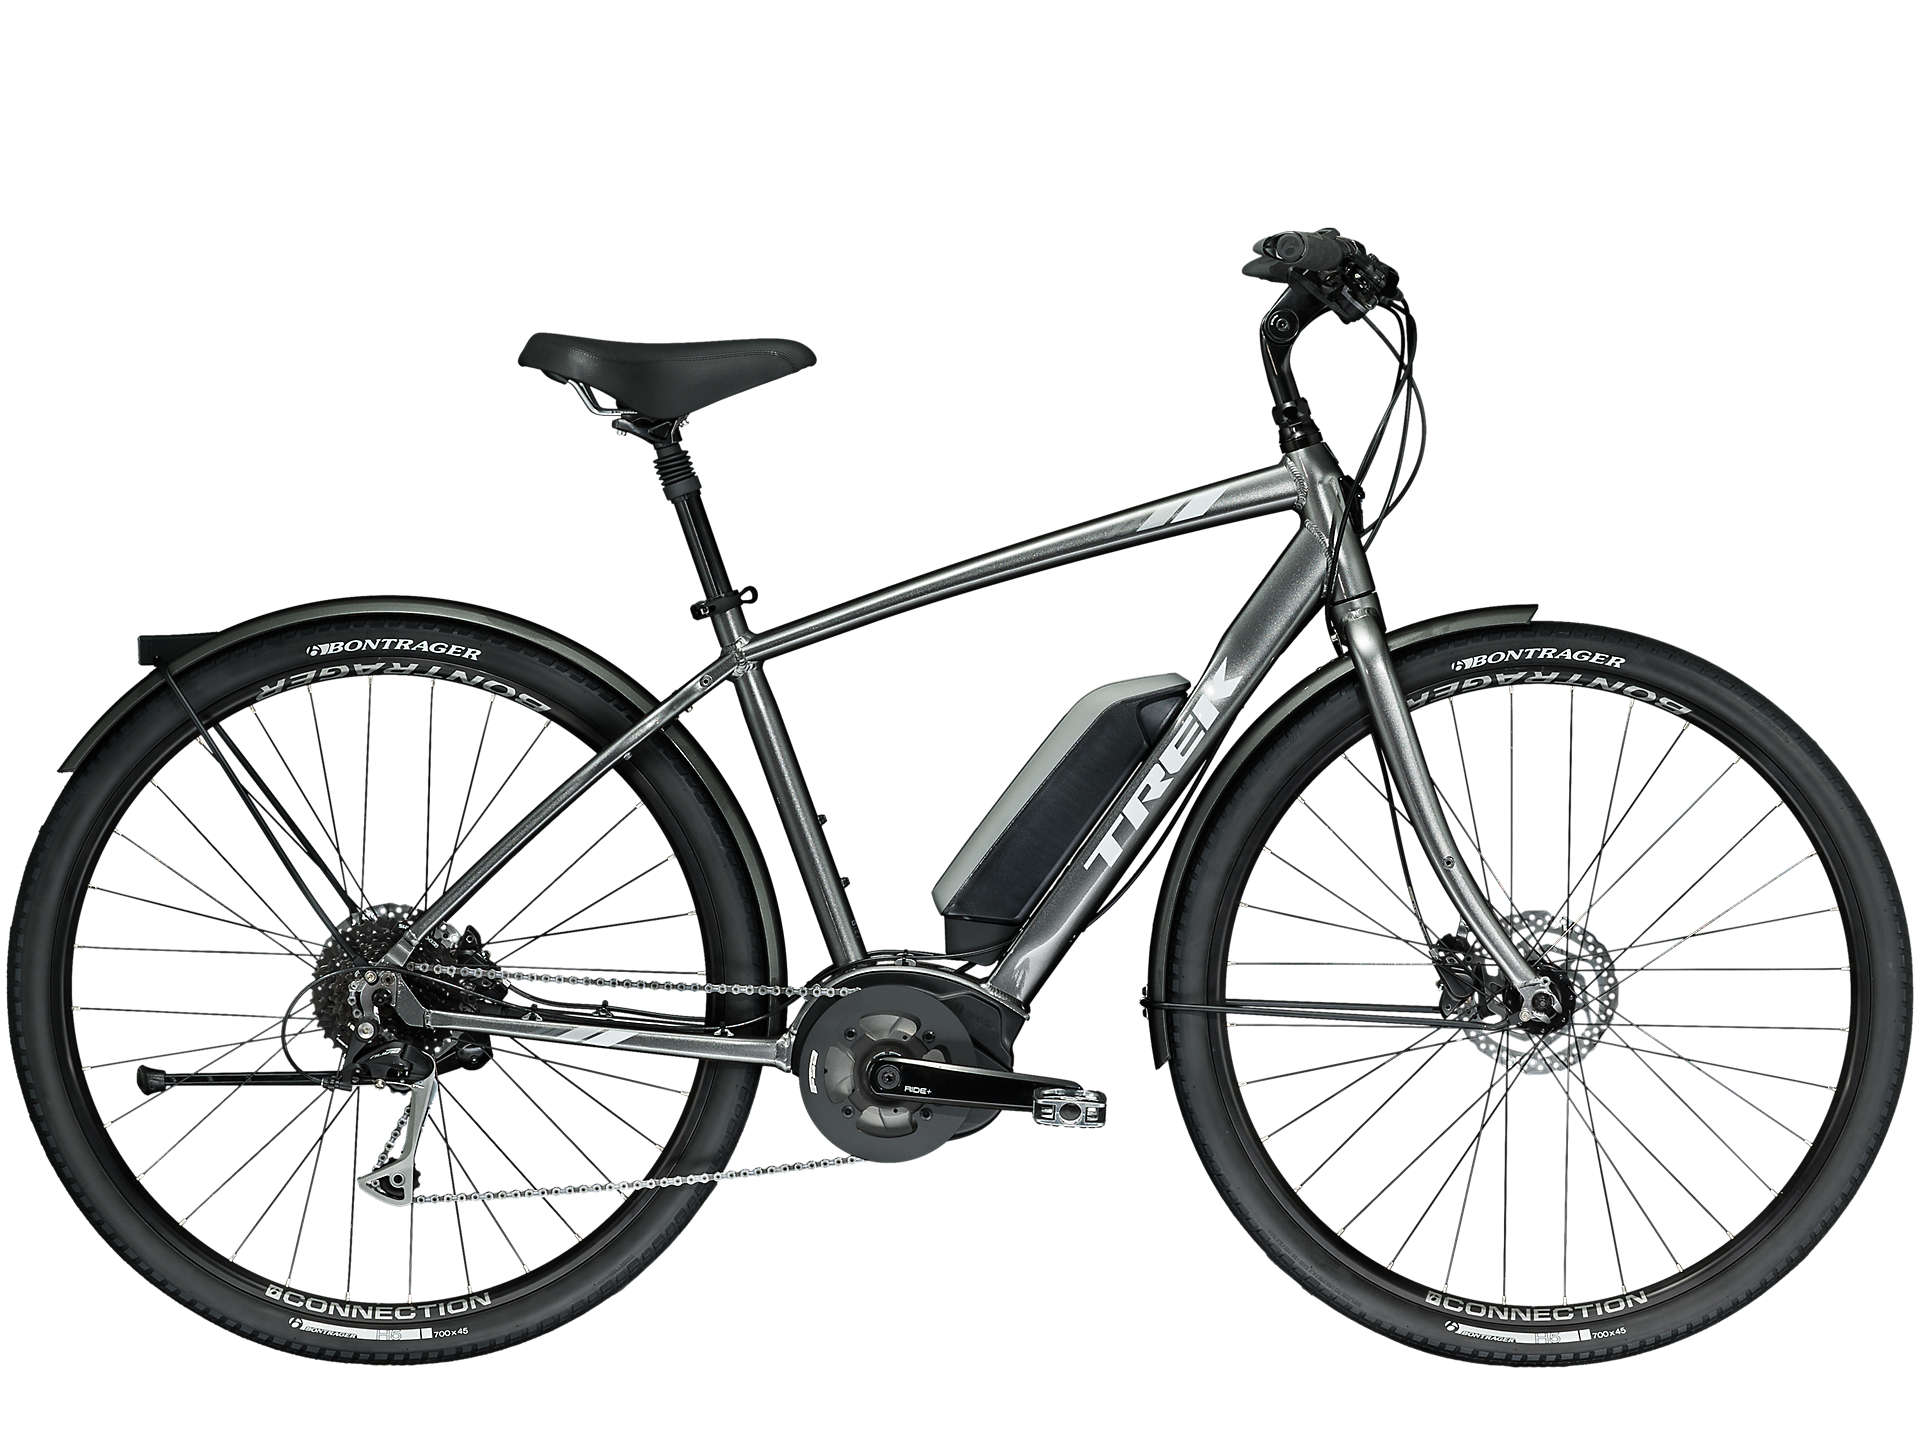 Trek Verve + Plus 2019 Electric Hybrid Bike Silver £2,000.00